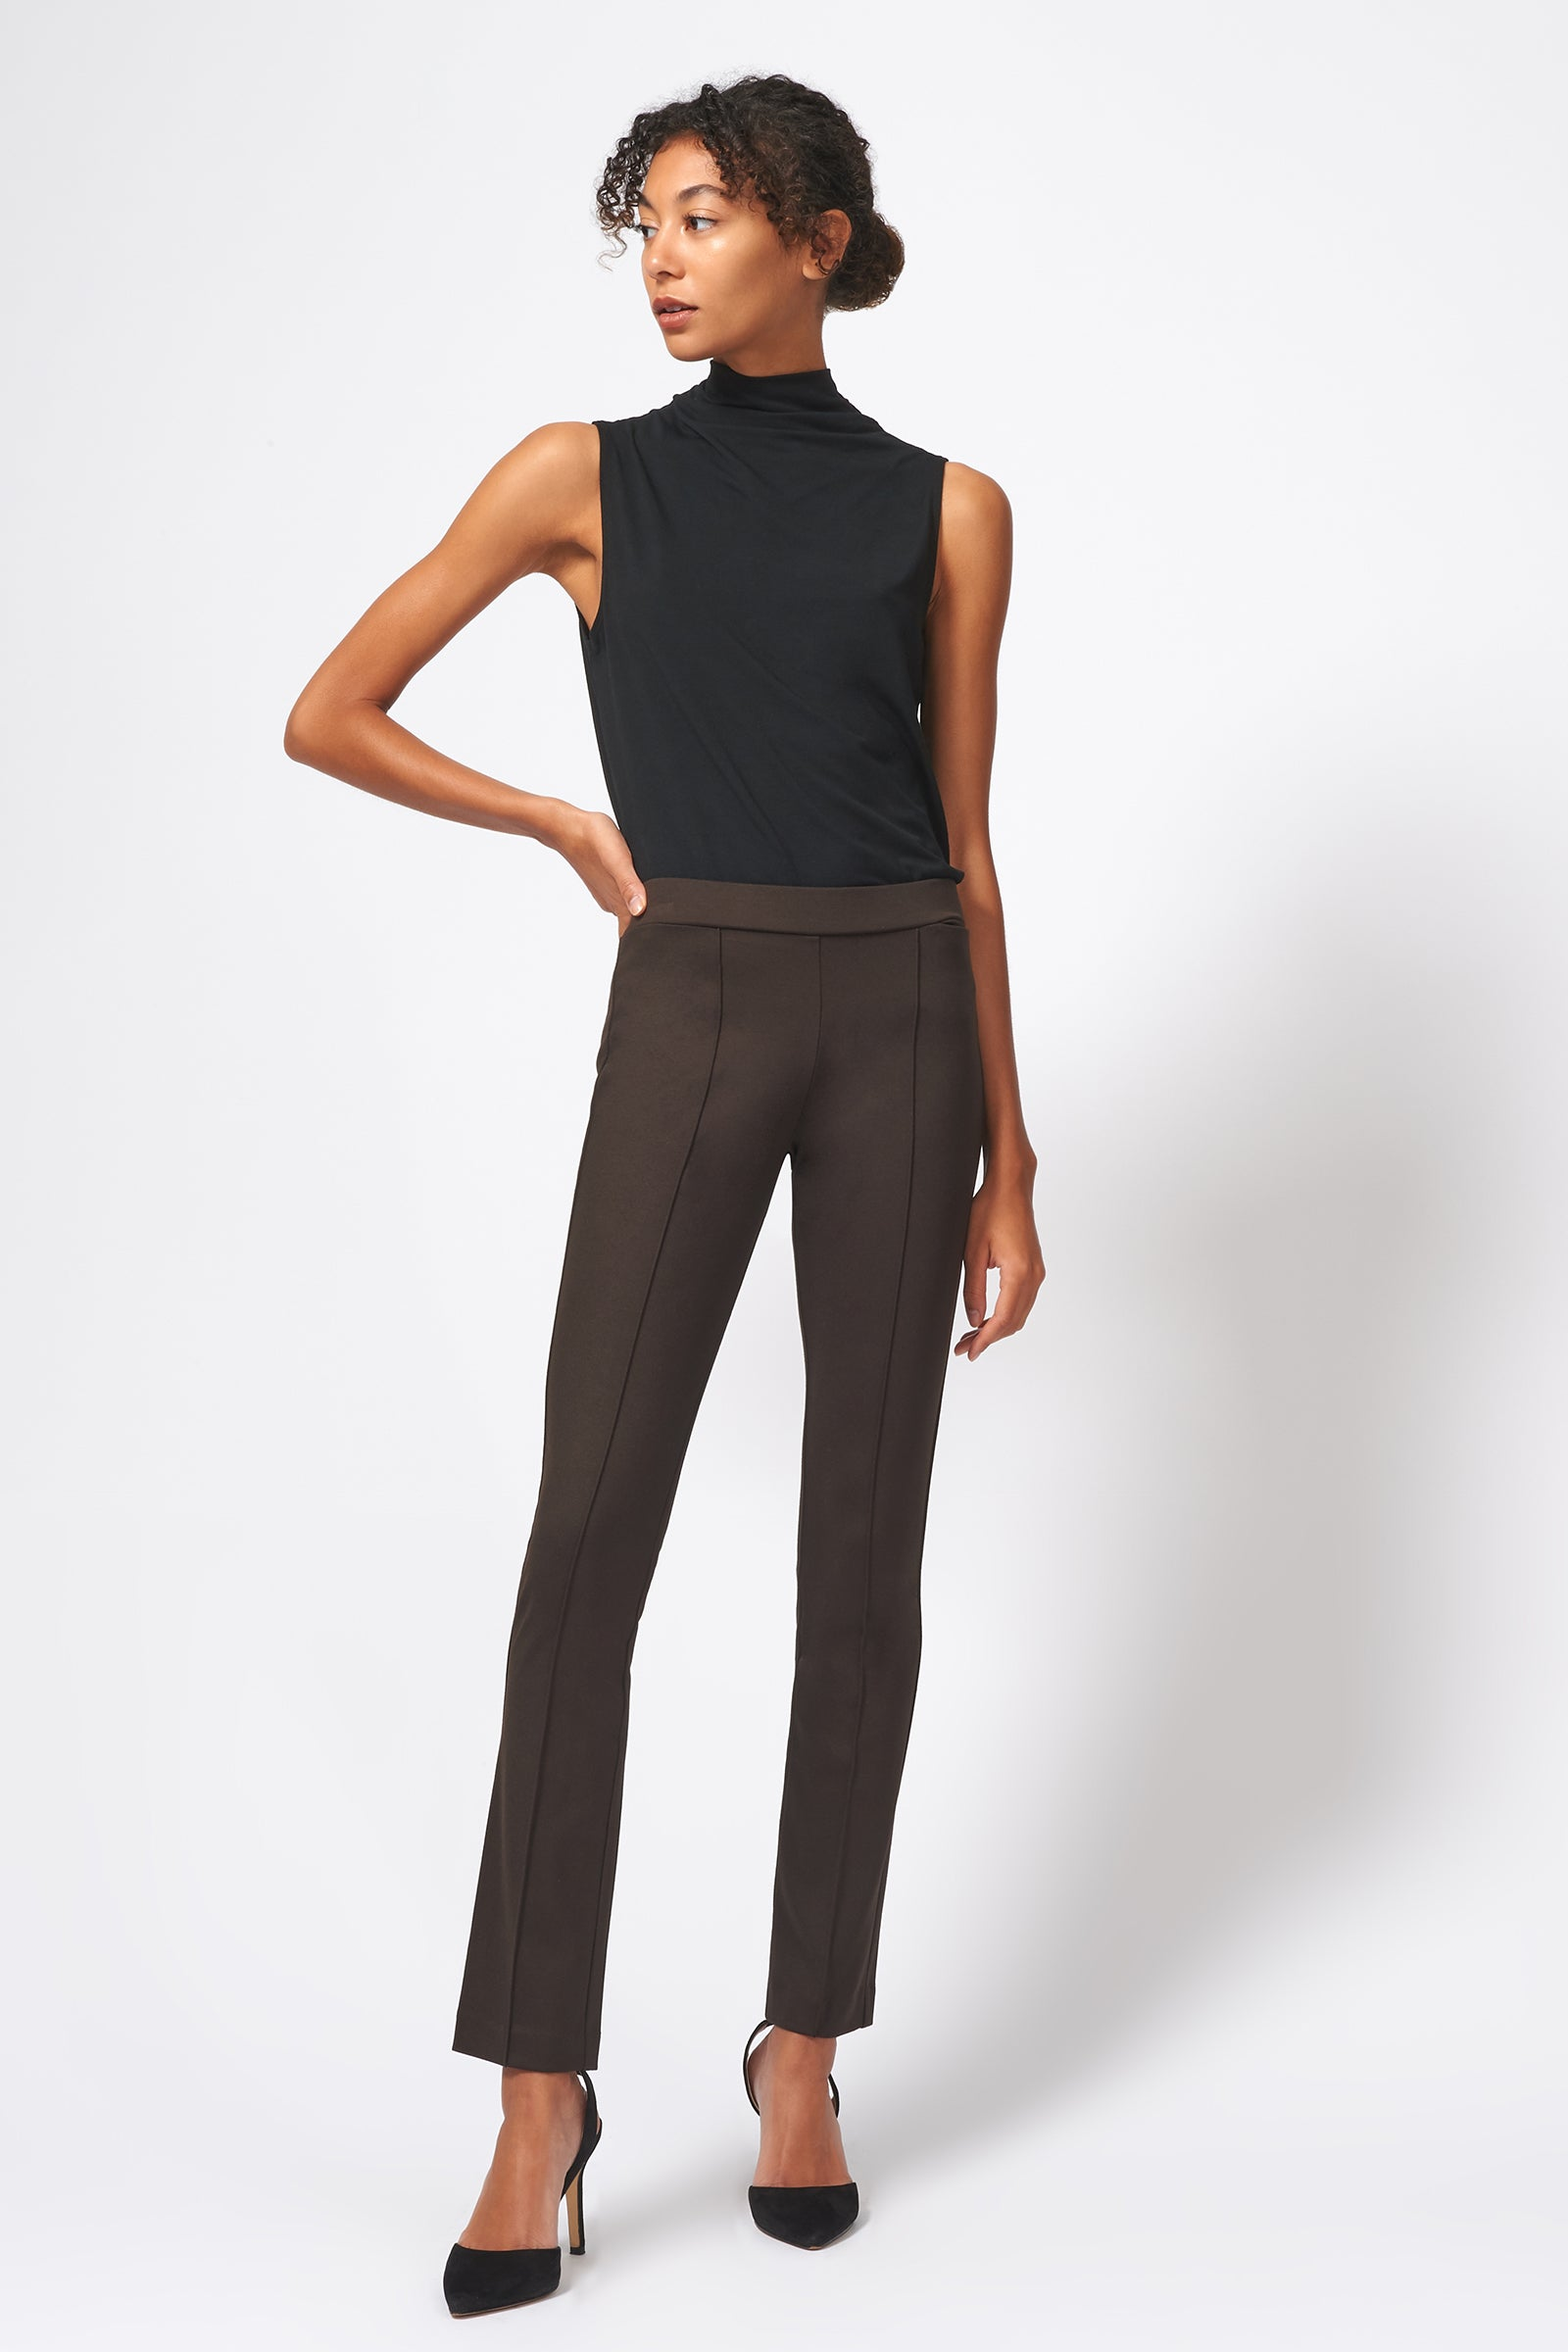 Kal Rieman Pintuck Ponte Straight Leg Pant in Espresso on Model Full Front View